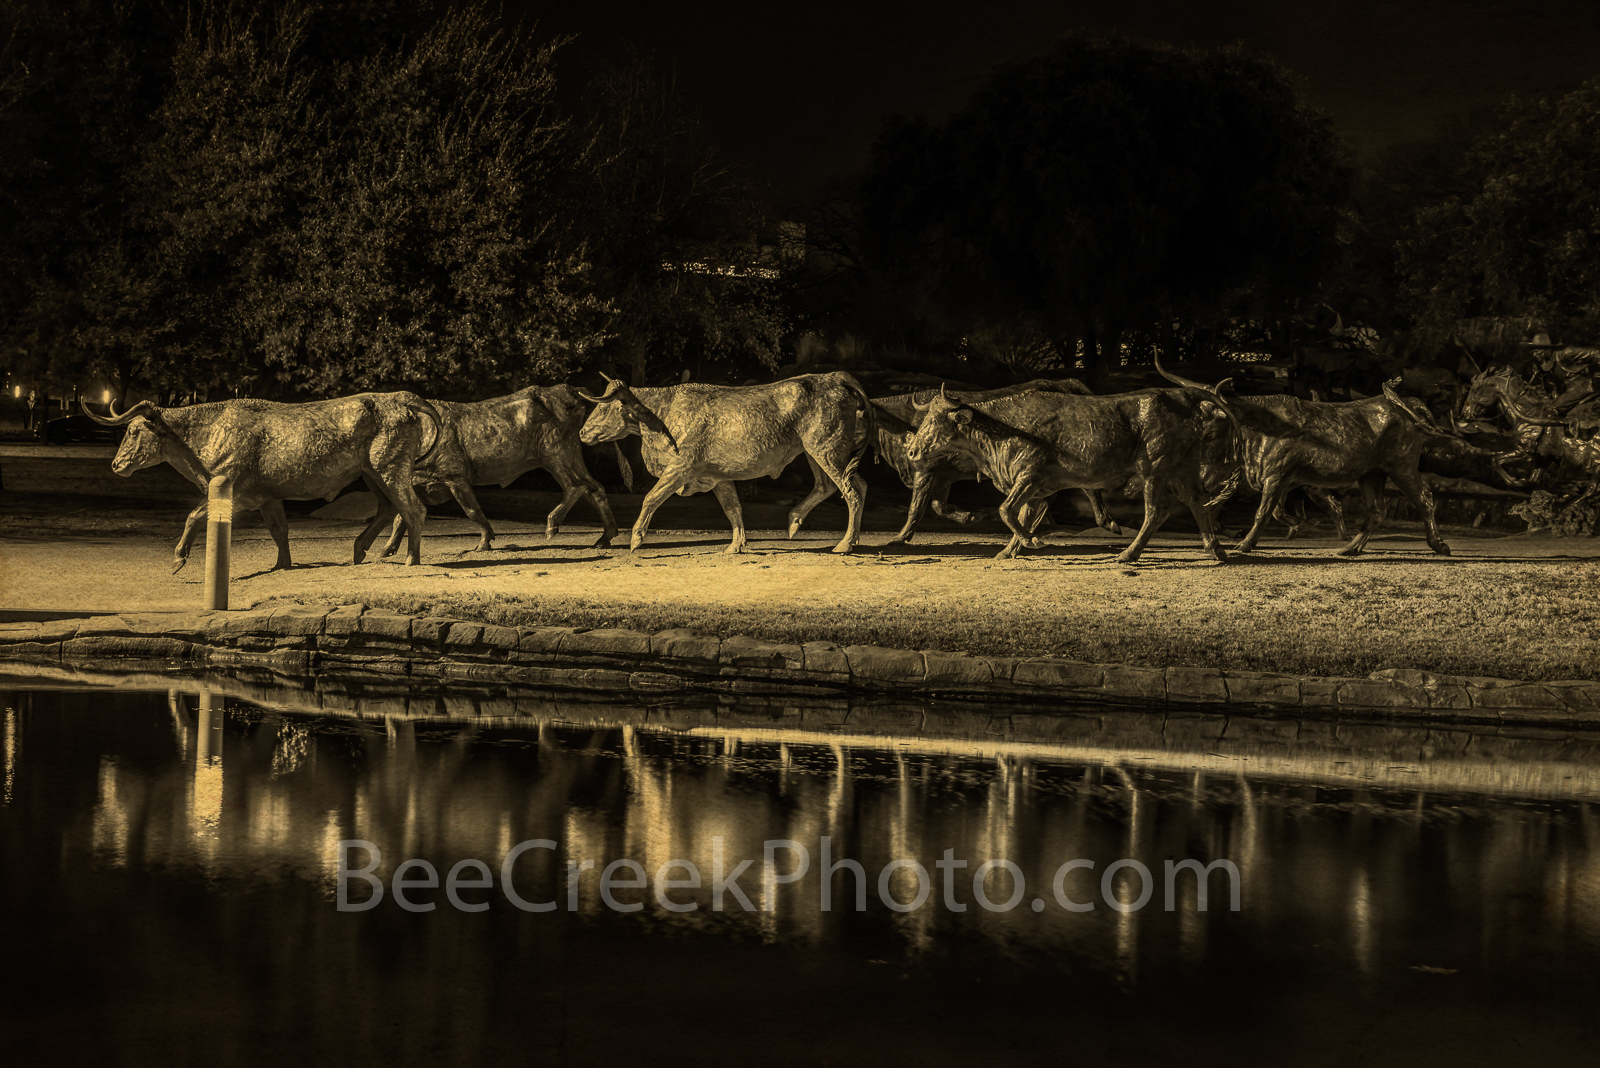 Dallas, pioneer park, downtown, bronze statues, cattle drive, shawnee trail, longhorns, cowboy, trail rider, herd, water, reflections, antique, sepia, , photo